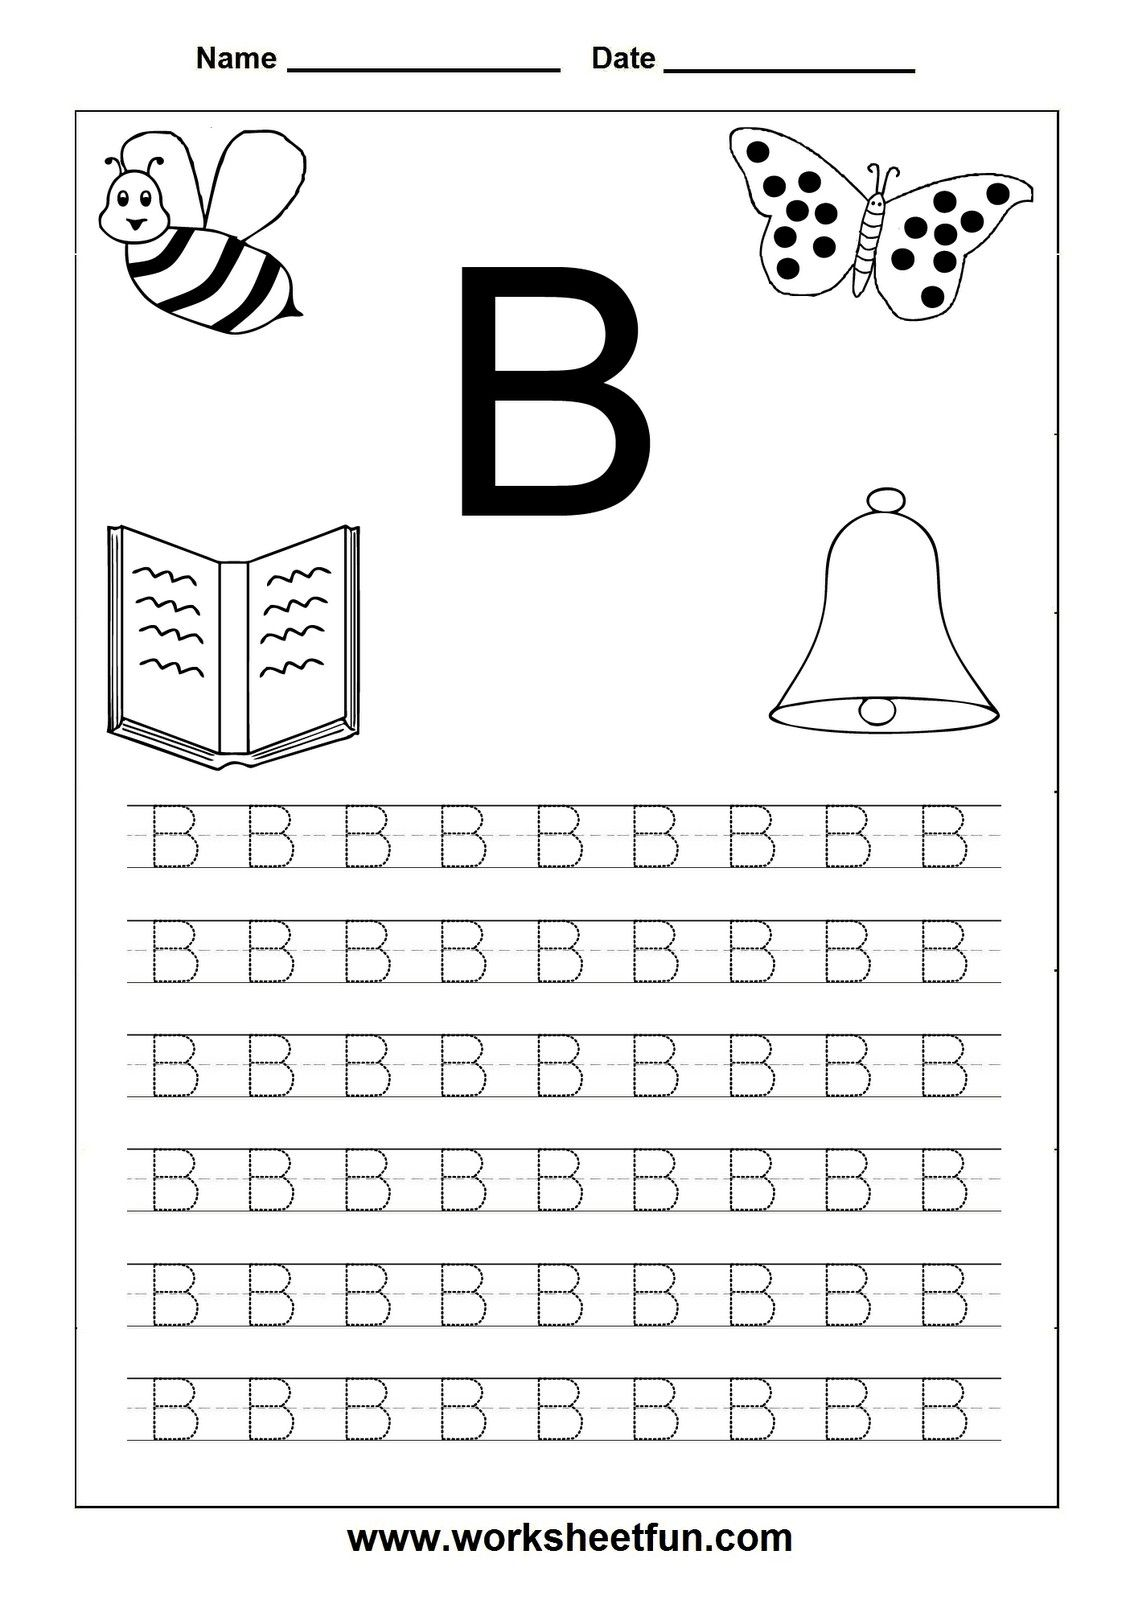 4 Worksheet Free Preschool Kindergarten Worksheets Letters